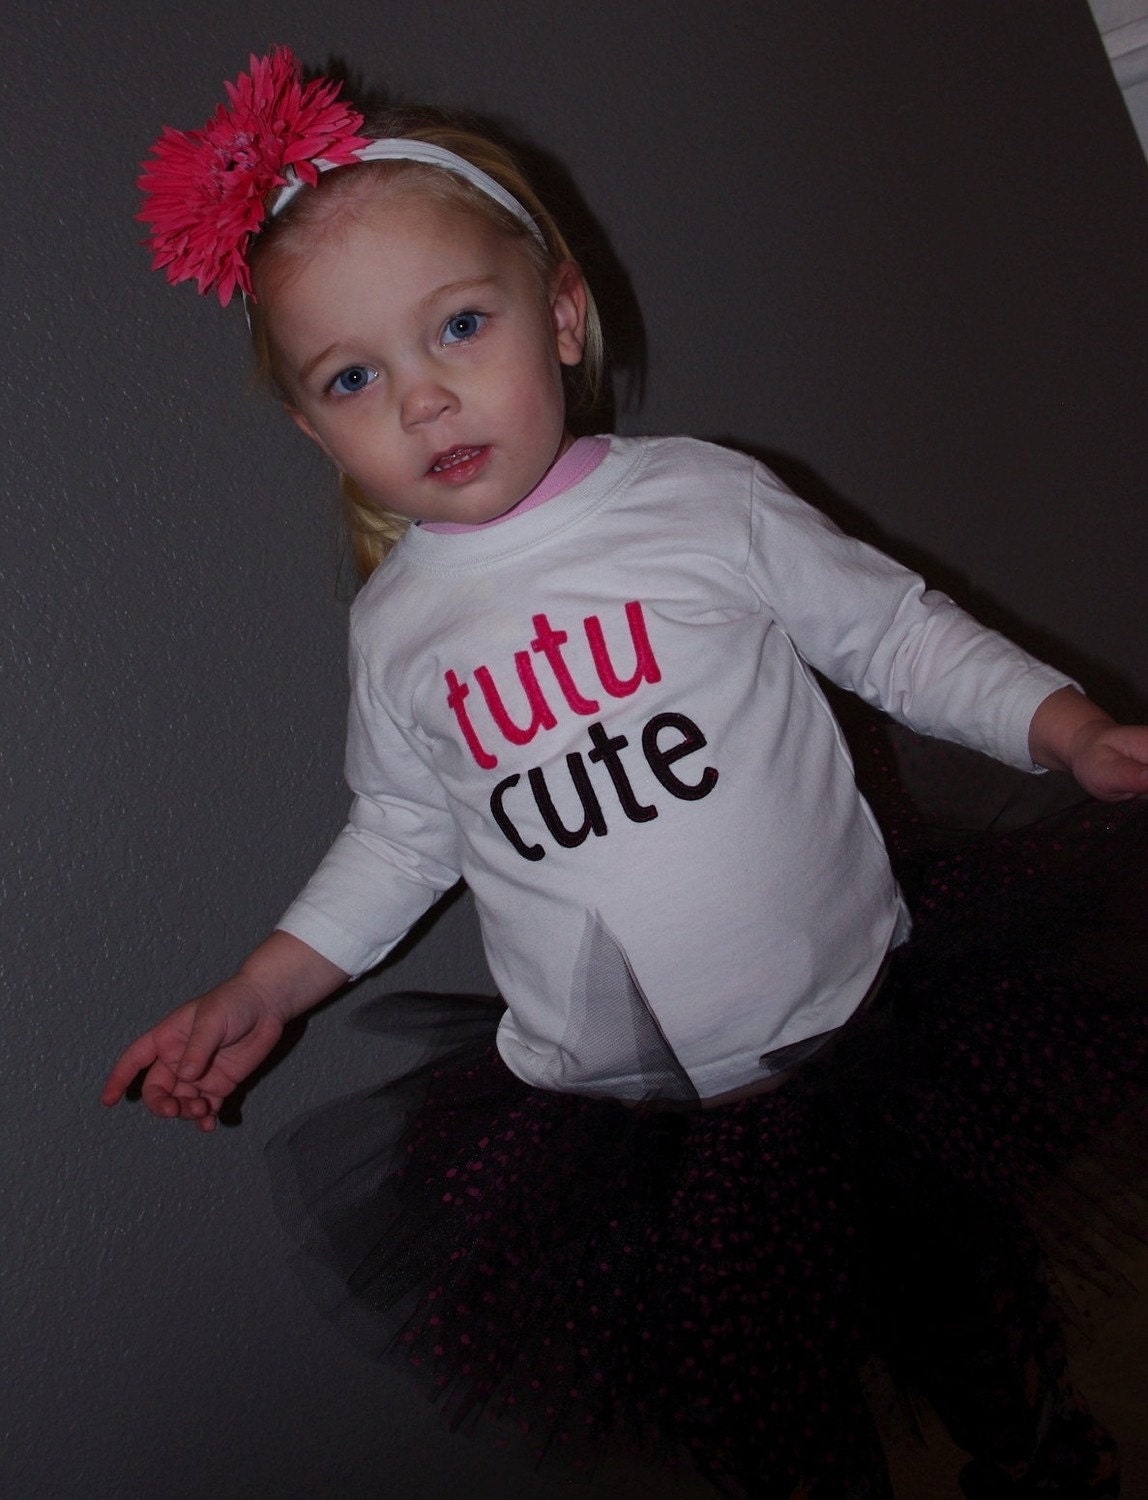 Toddler Girl tutu cute shirt in hot pink and black